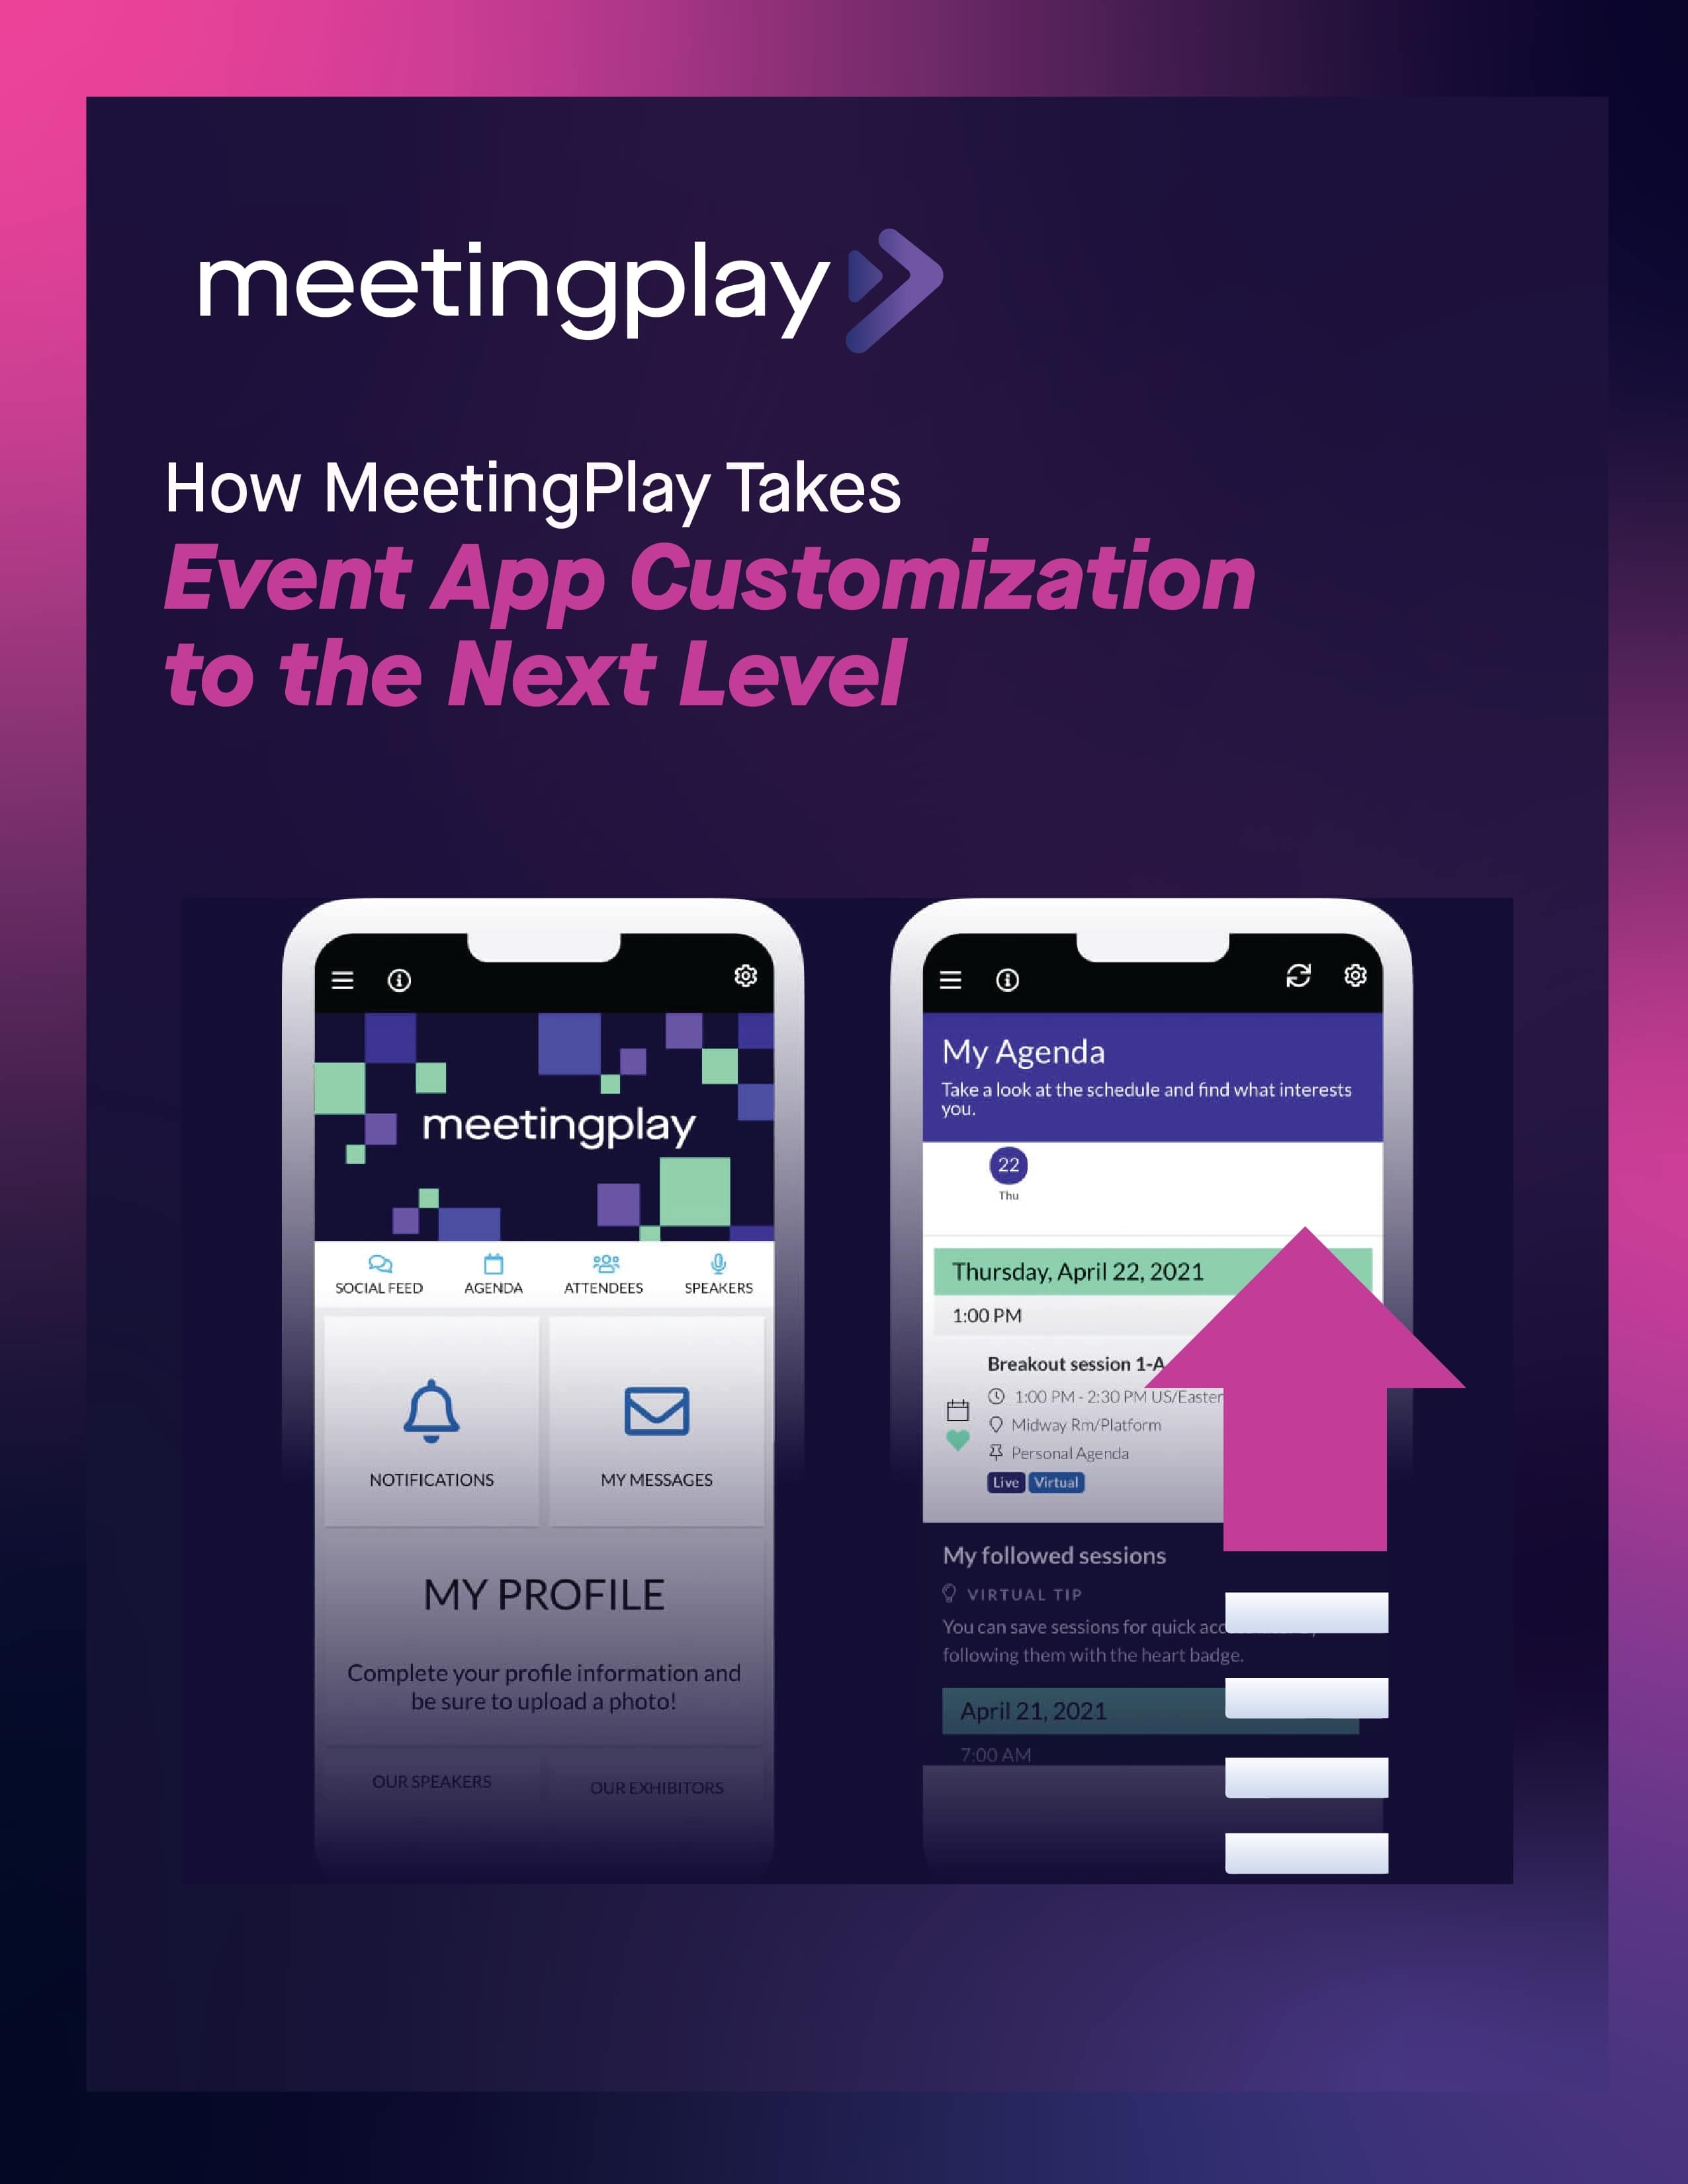 How MeetingPlay Takes Event App Customization to the Next Level